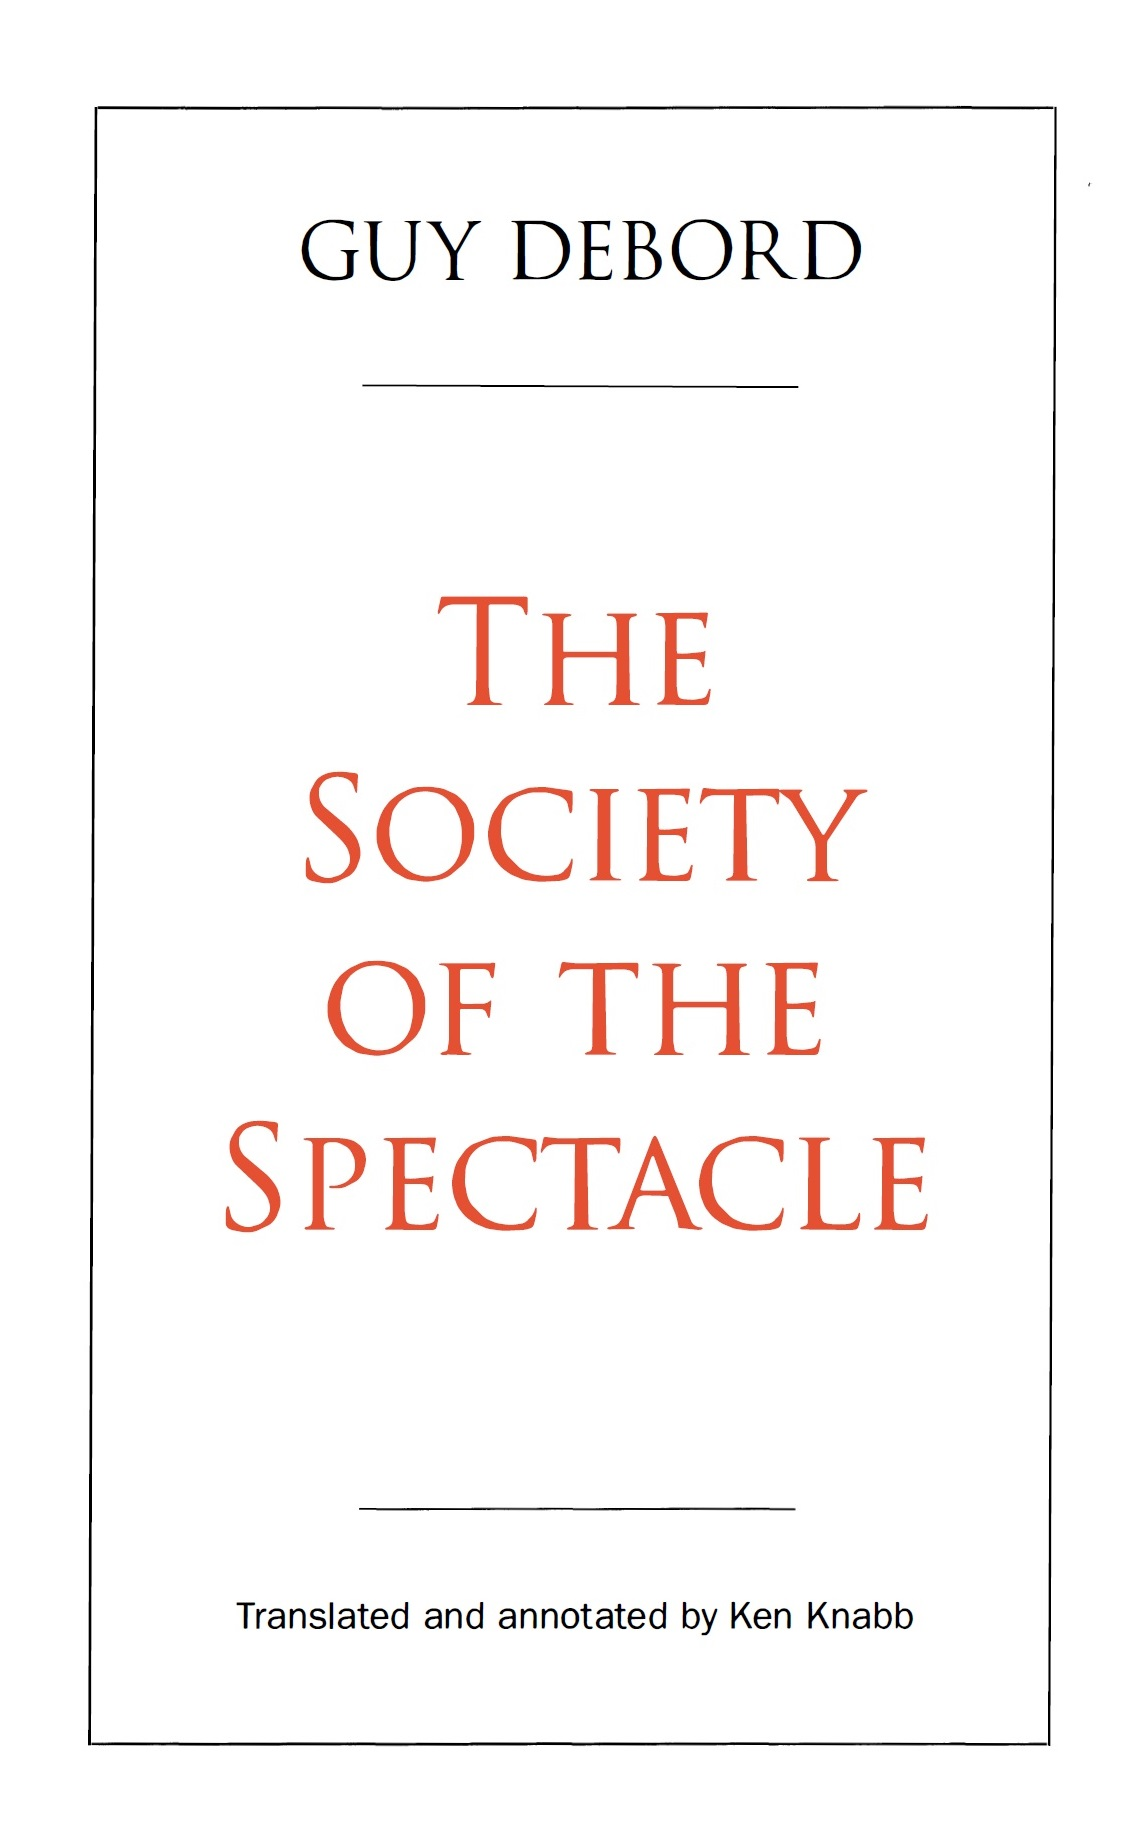 Guy-debord-the-society-of-the-spectacle-theoryleaks.jpg